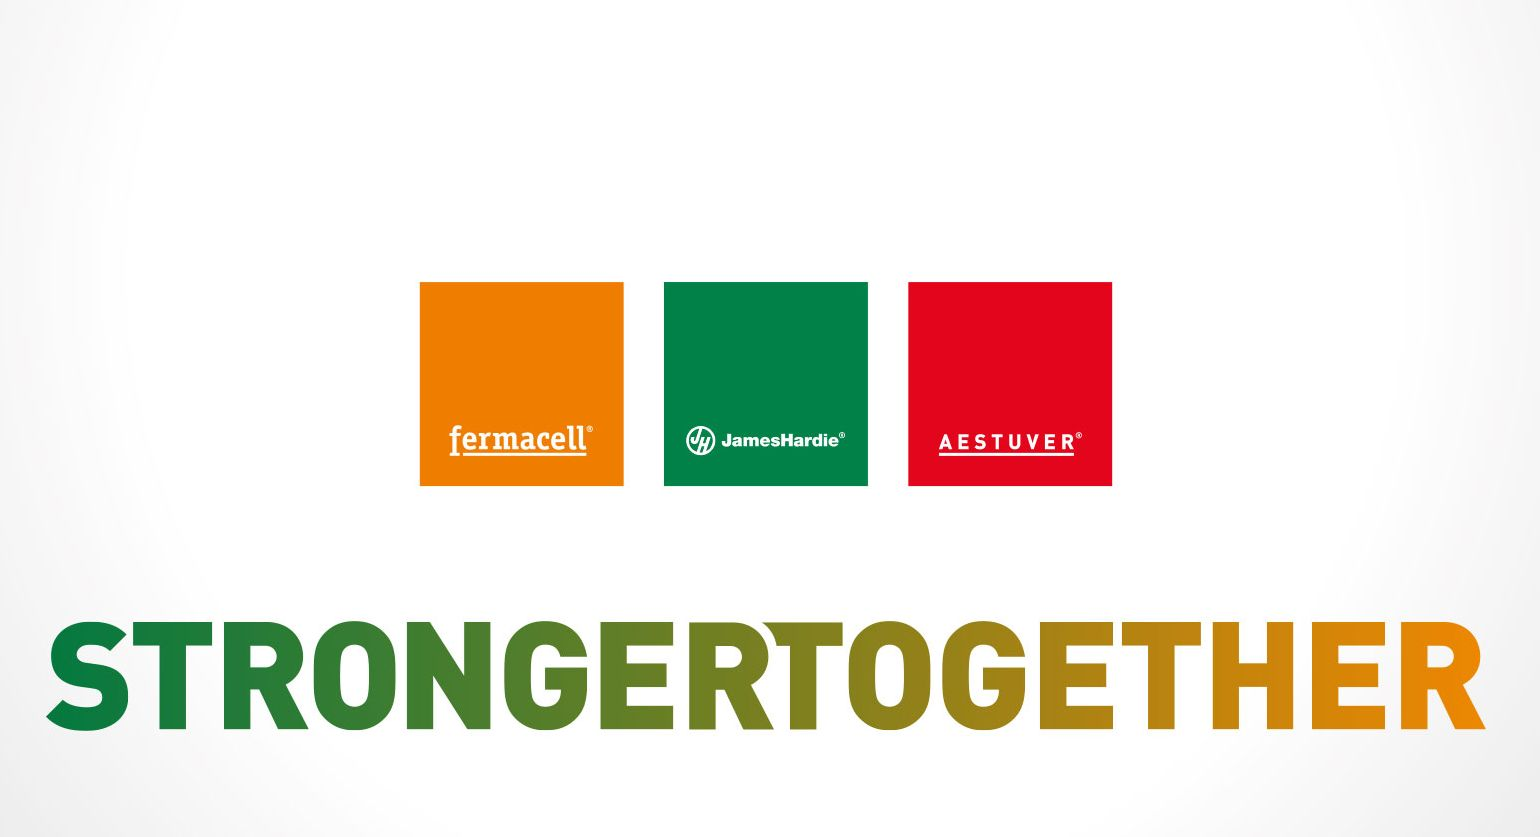 strongertogether fermacell Logo, Aestuver Logo, Jameshardie Logo